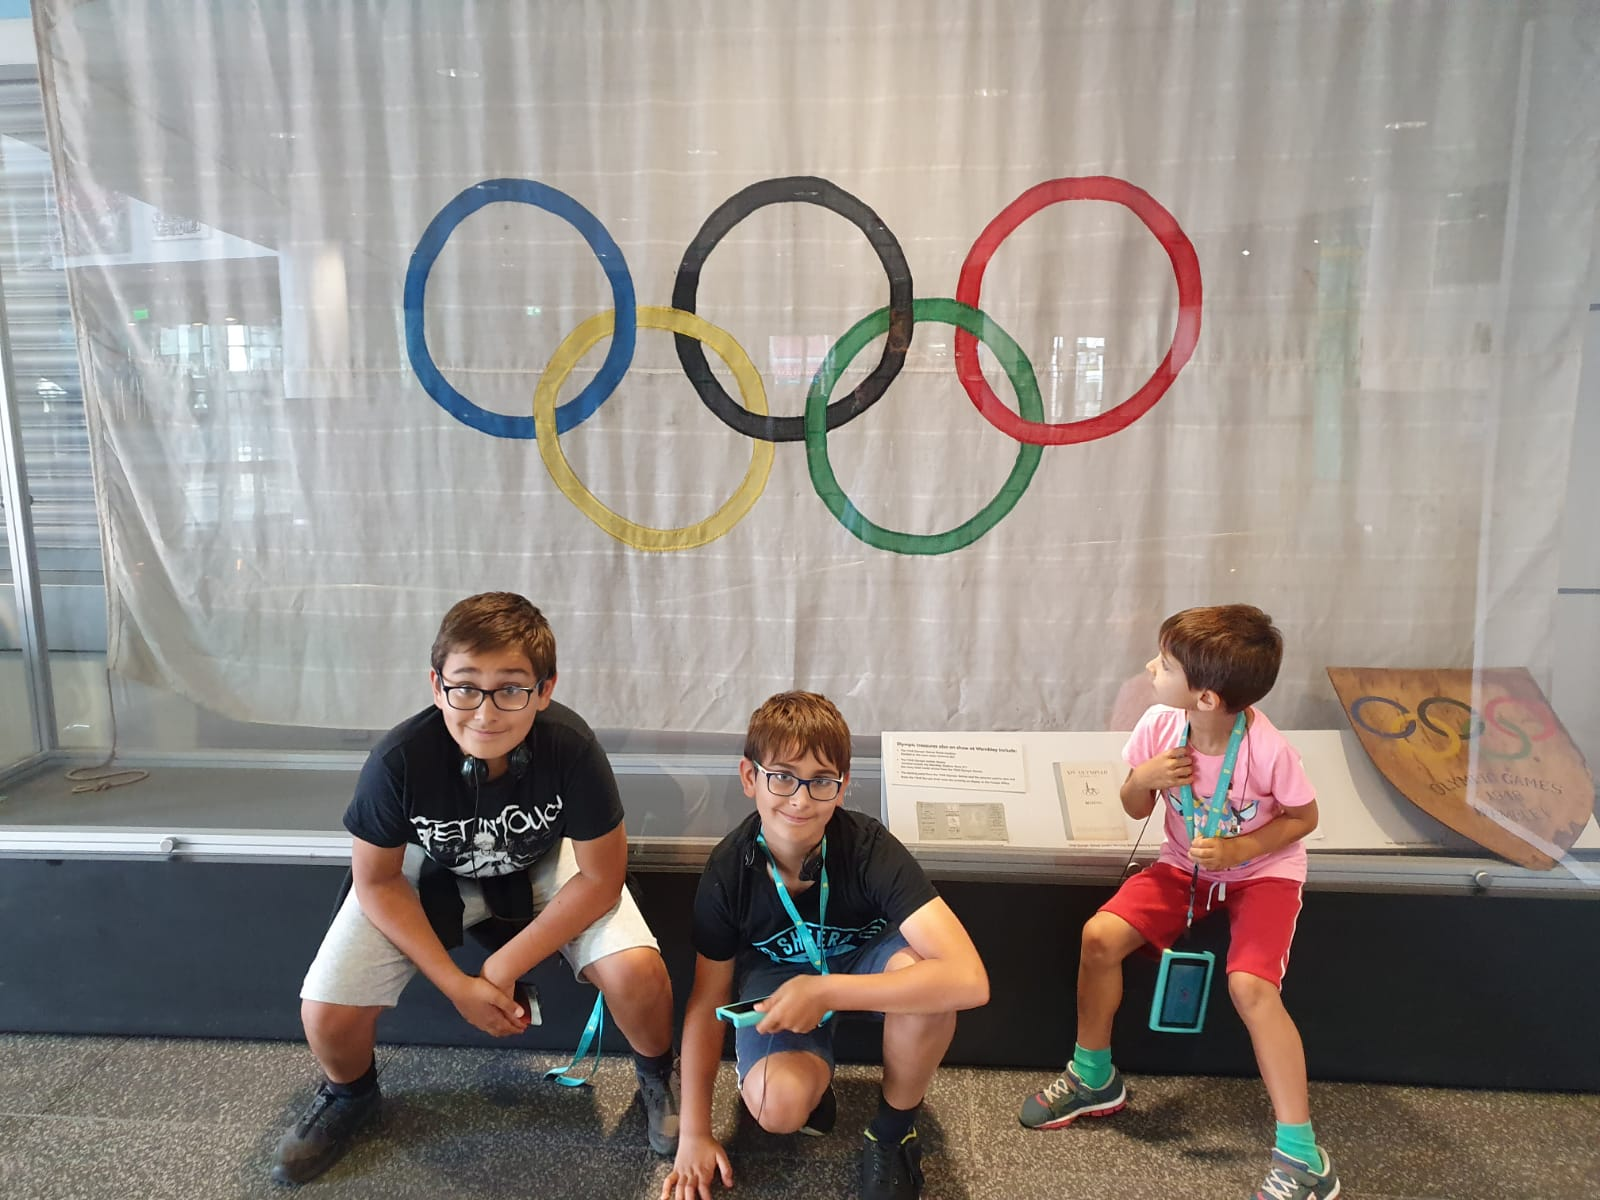 Three kids sat near the Olympics flag at Wembley Stadium